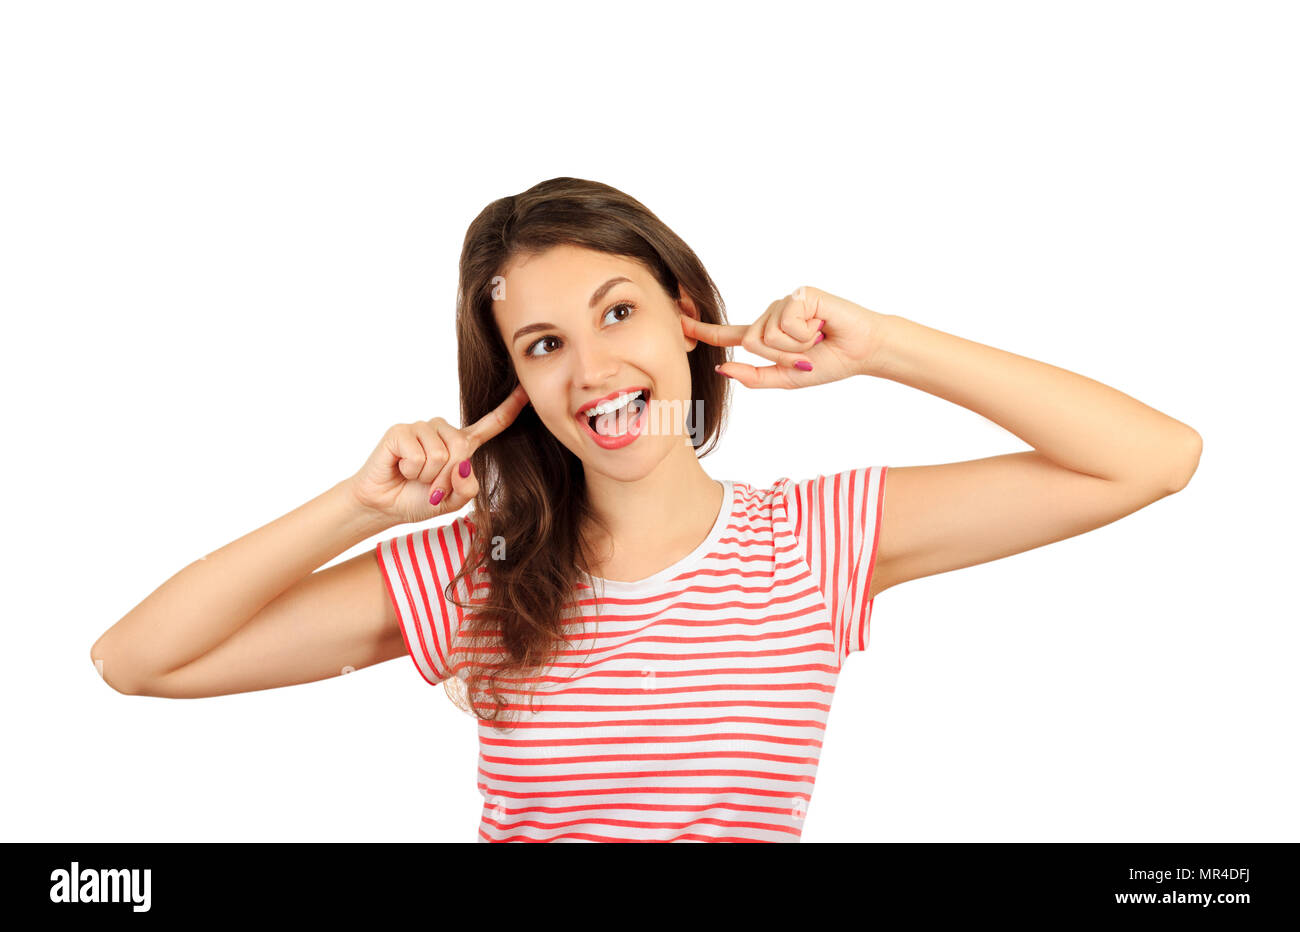 Funny goofy young woman with bug eyes grimacing, having stupid and ridiculous facial expression. emotional girl isolated on white background. - Stock Image